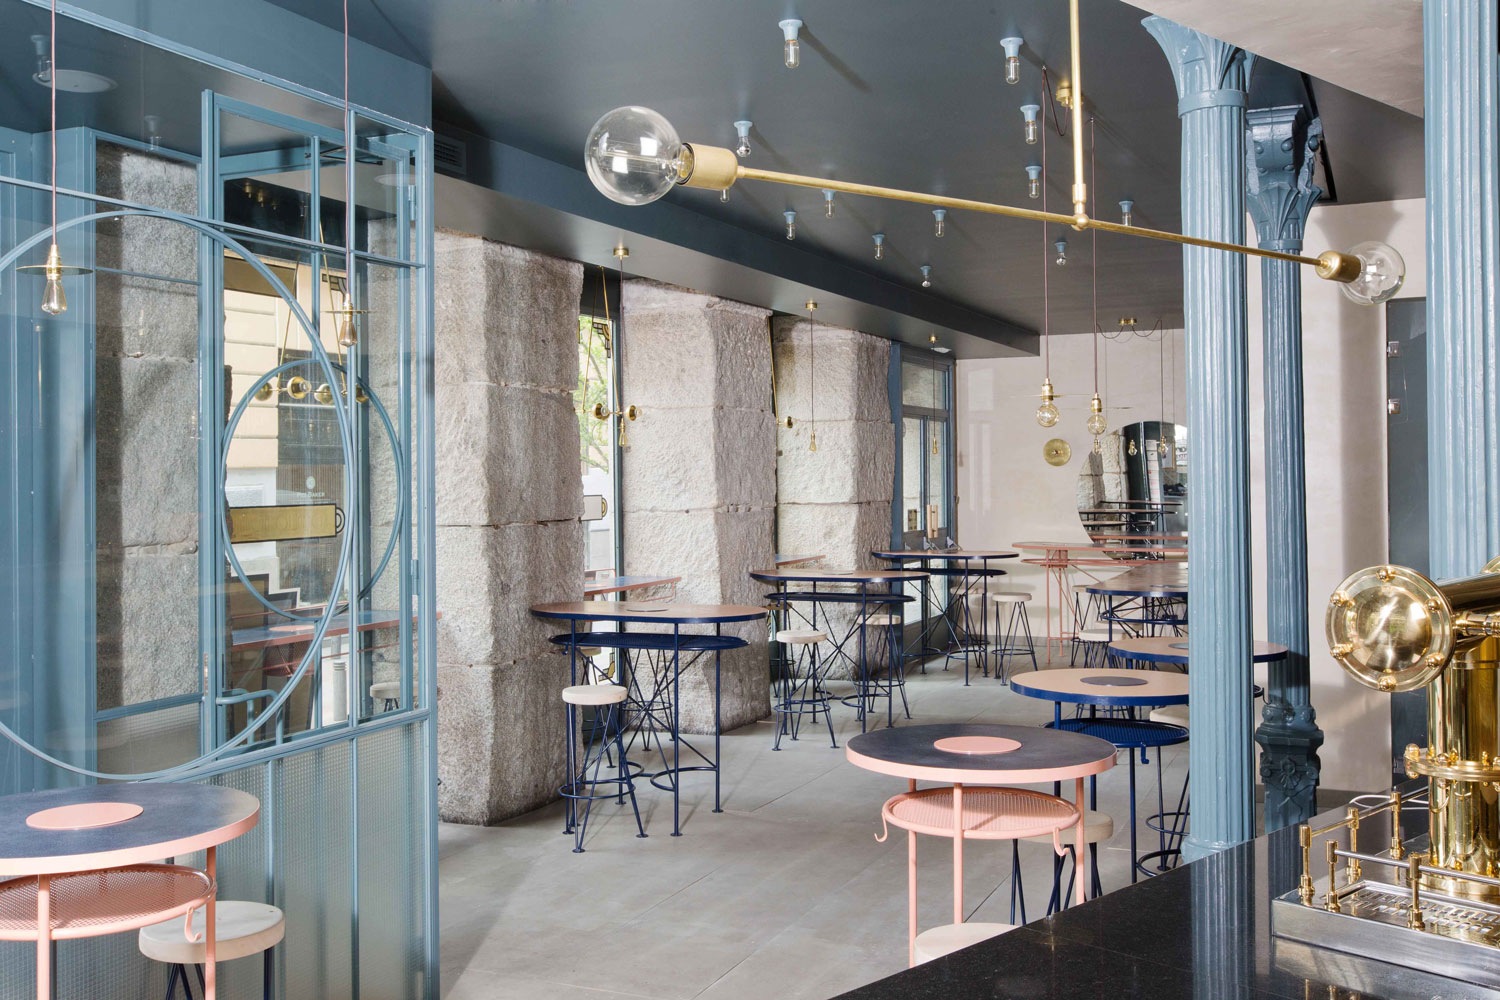 sandwich-champaign-bar-madrid-by-lucas-y-hernandez-gil-yellowtrace-08-1